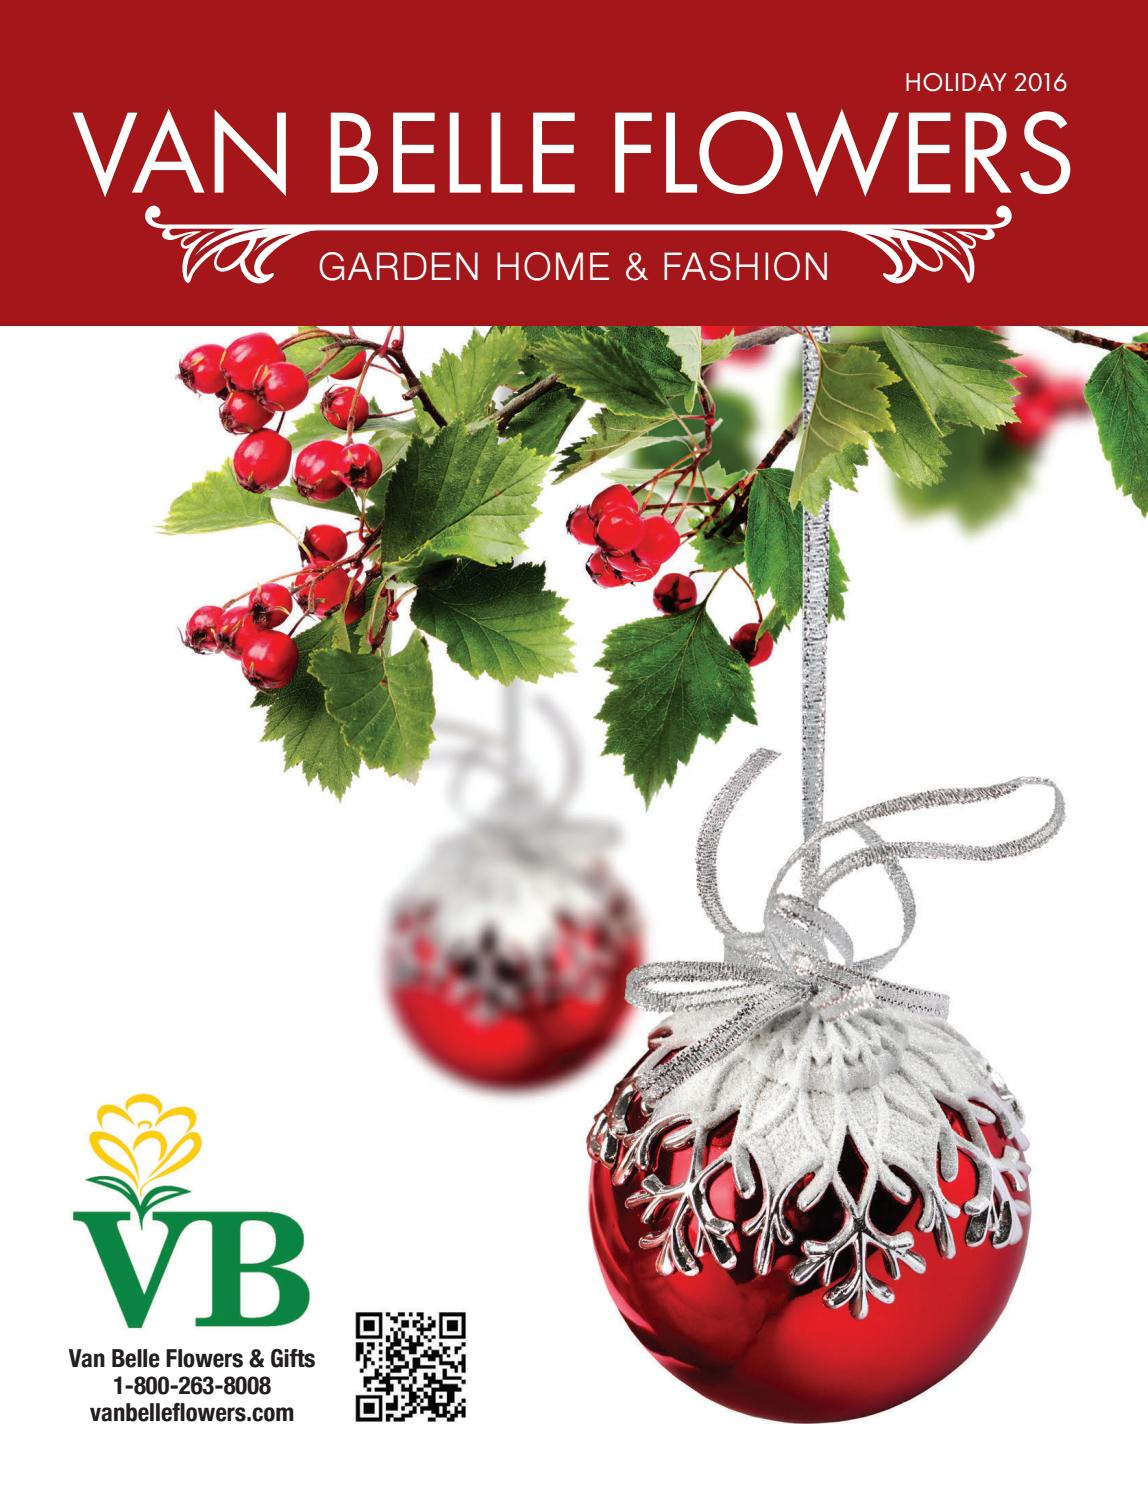 Van Belle Flowers Holiday 2016 by Country Road Graphics Inc. - issuu